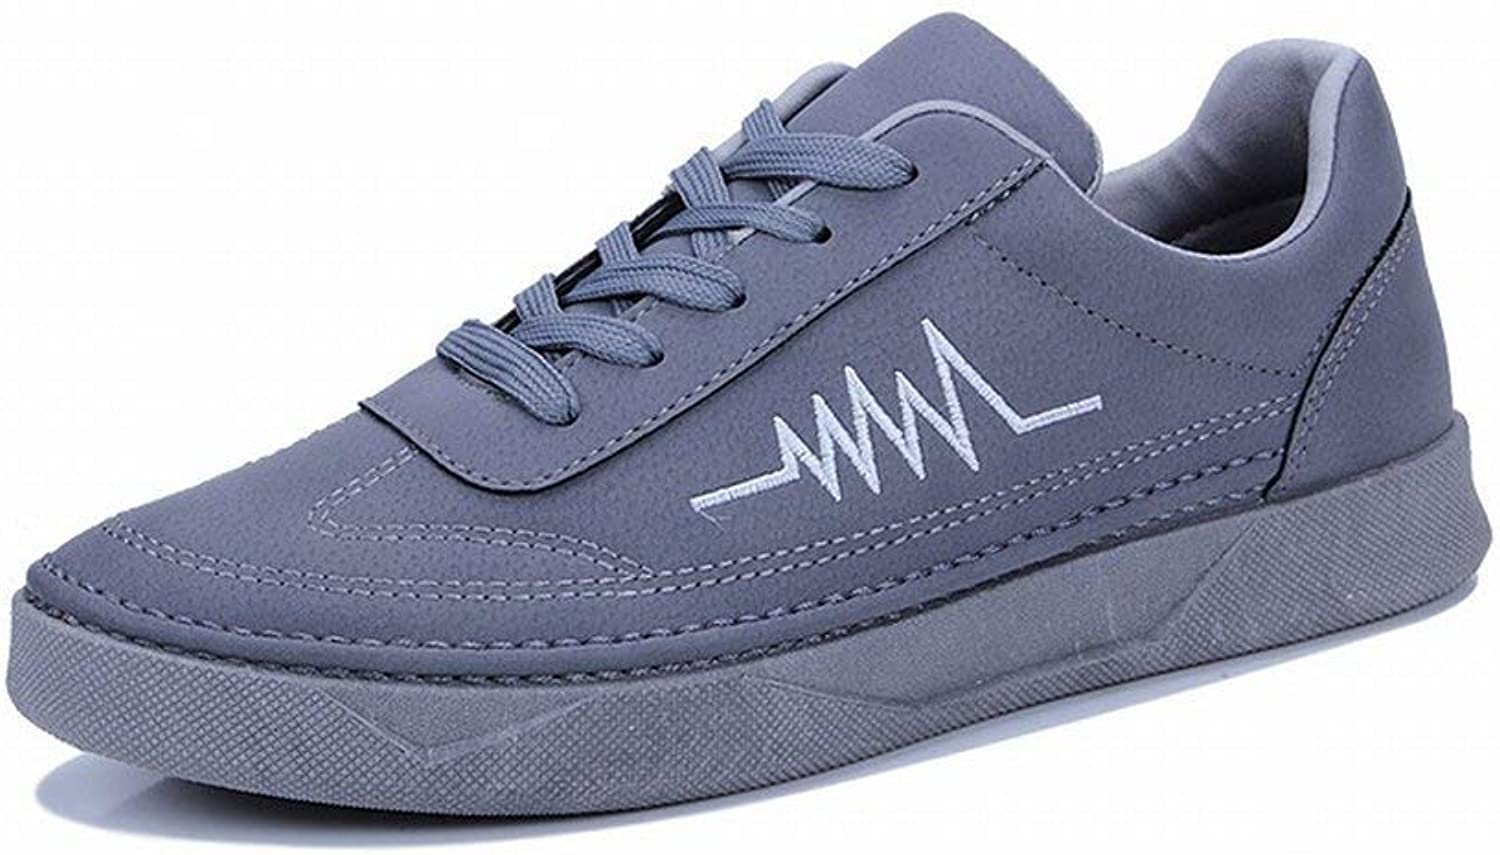 FuweiEncore Male Tide shoes Youth Lightning Pattern Black Casual shoes shoes (color   Grey, Size   41)